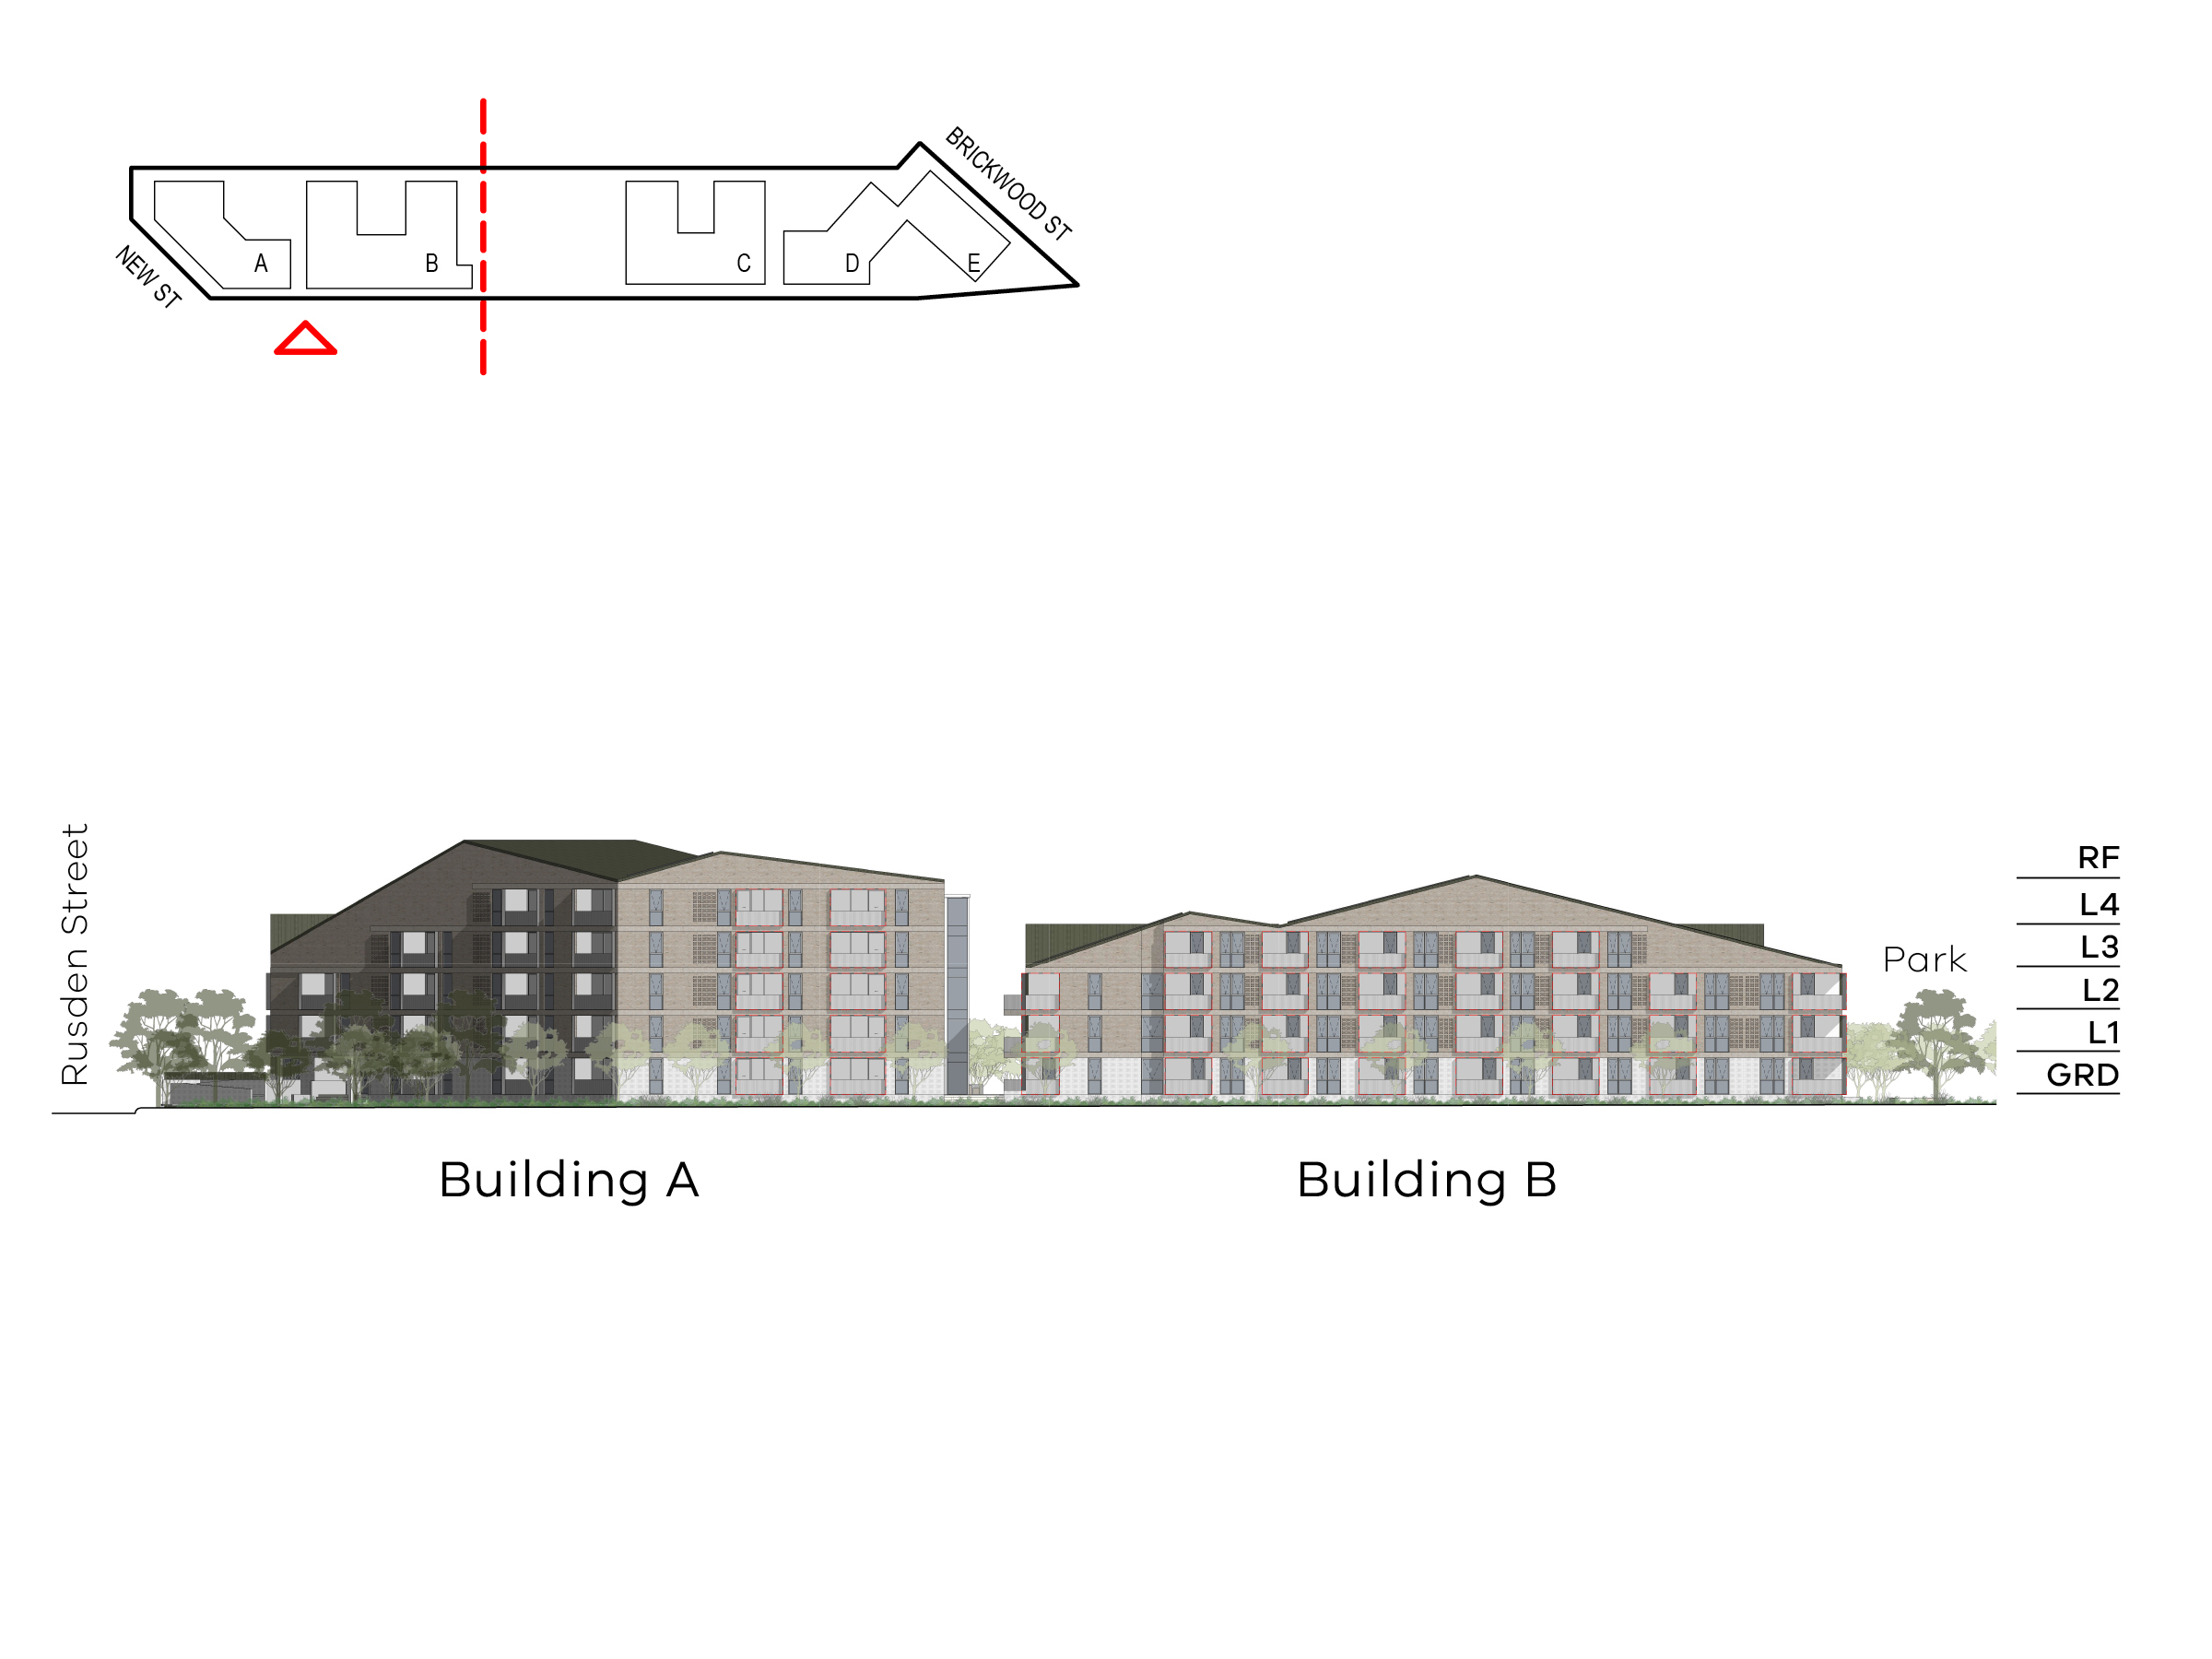 Diagram showing the heights of buildings A and B as seen from Elster Creek. Building A includes ground level, level 1 - 4 and a roof, building B includes ground level, level 1-3 and a roof.